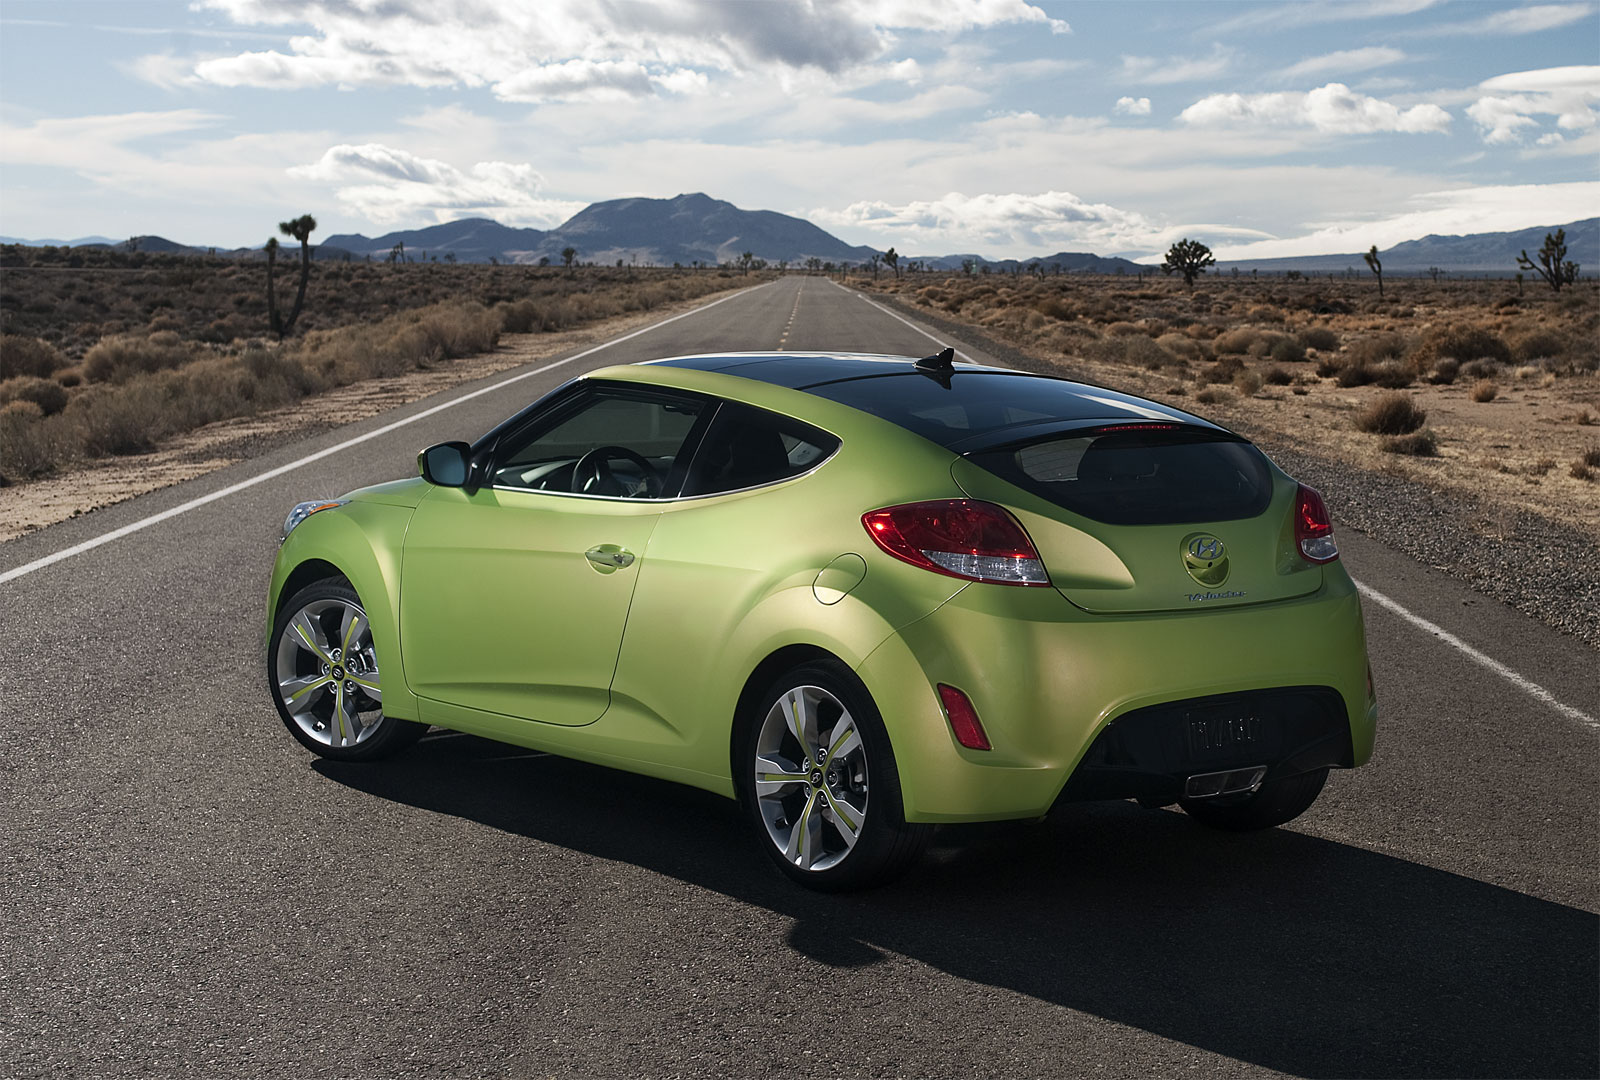 Sport Cars Hyundai Veloster Hd Wallpapers 2012